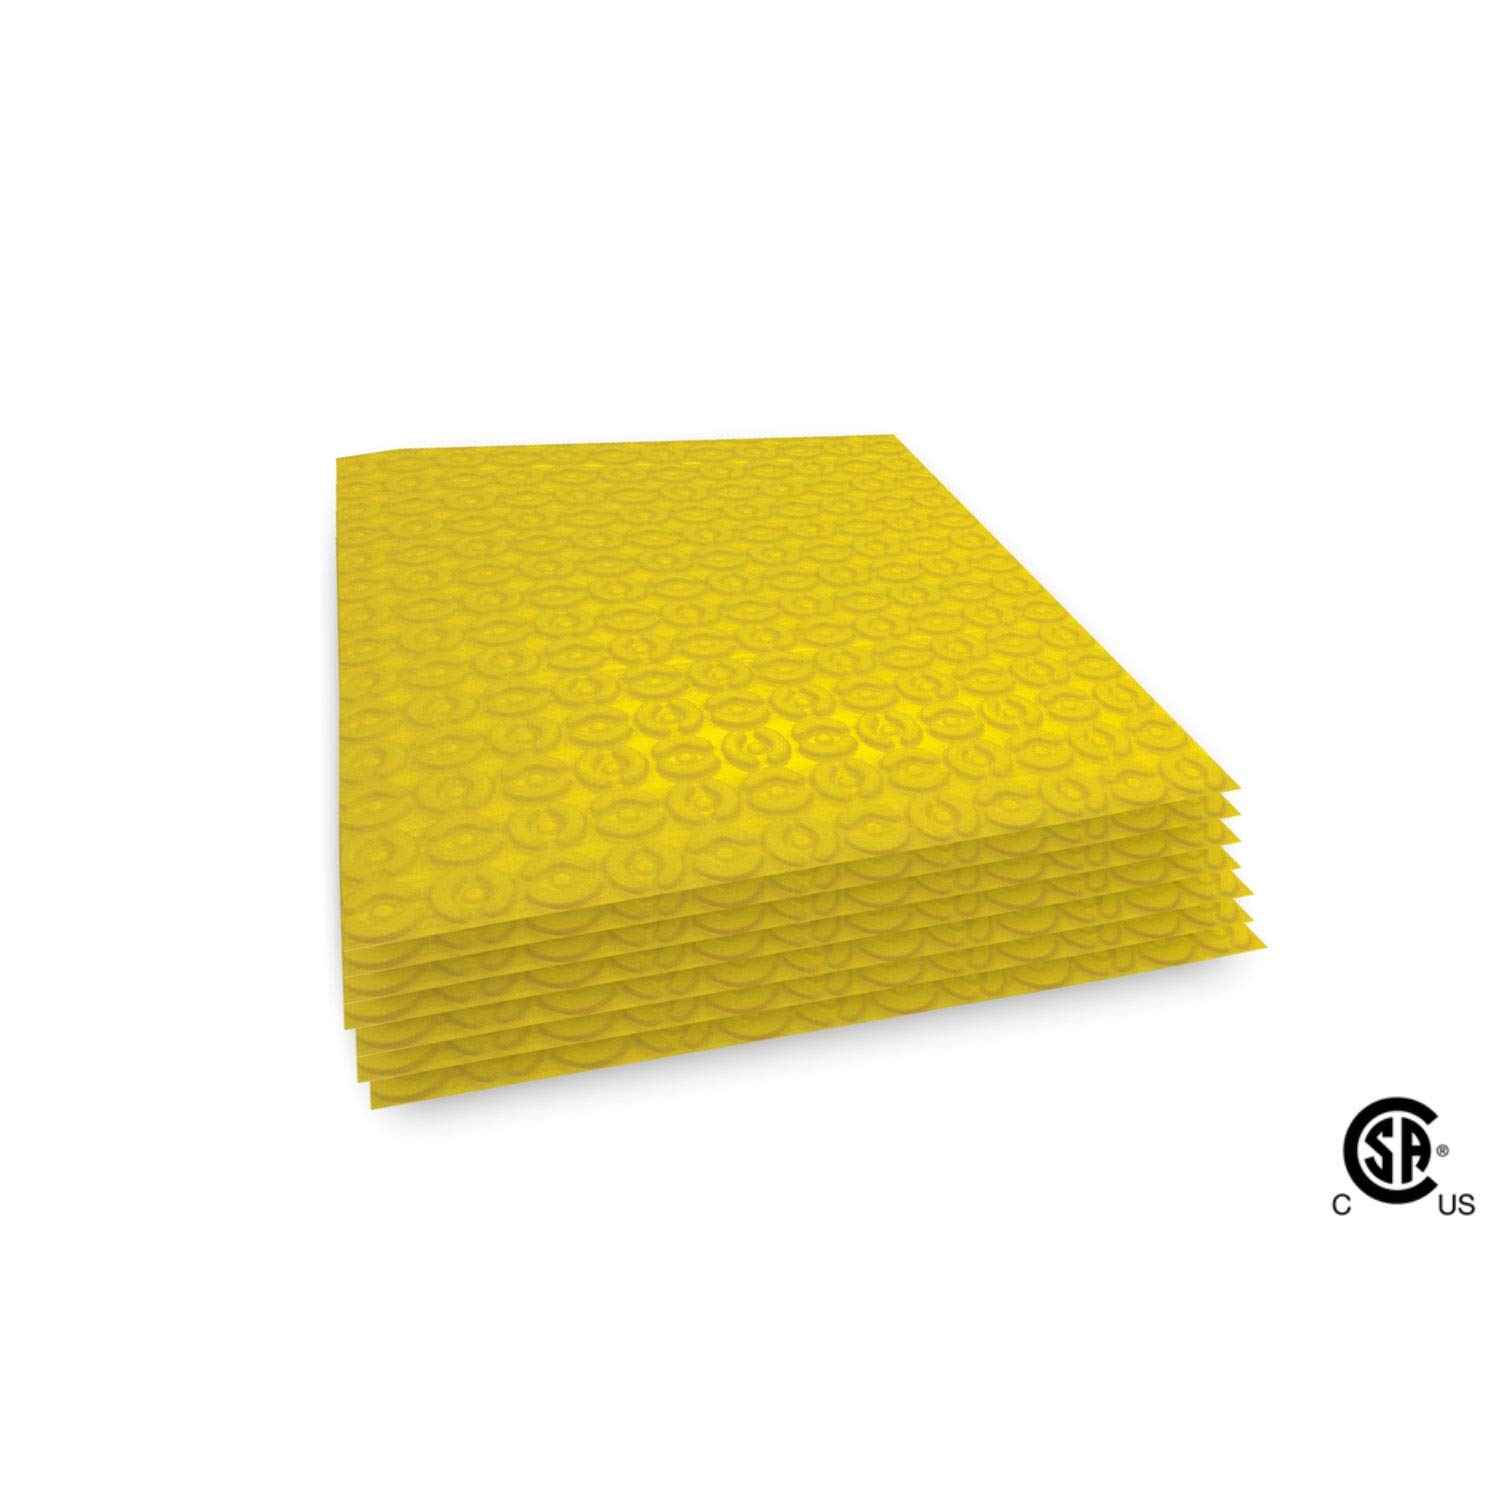 Momento Uncoupling Membrane for Under Tile Heating Systems and Crack Prevention-15.60sqft. New Tile Underlayment with Self-Adhesive Backing, Adheres to Subfloor Without Mortar - Other Sizes Available by ProLux Materials